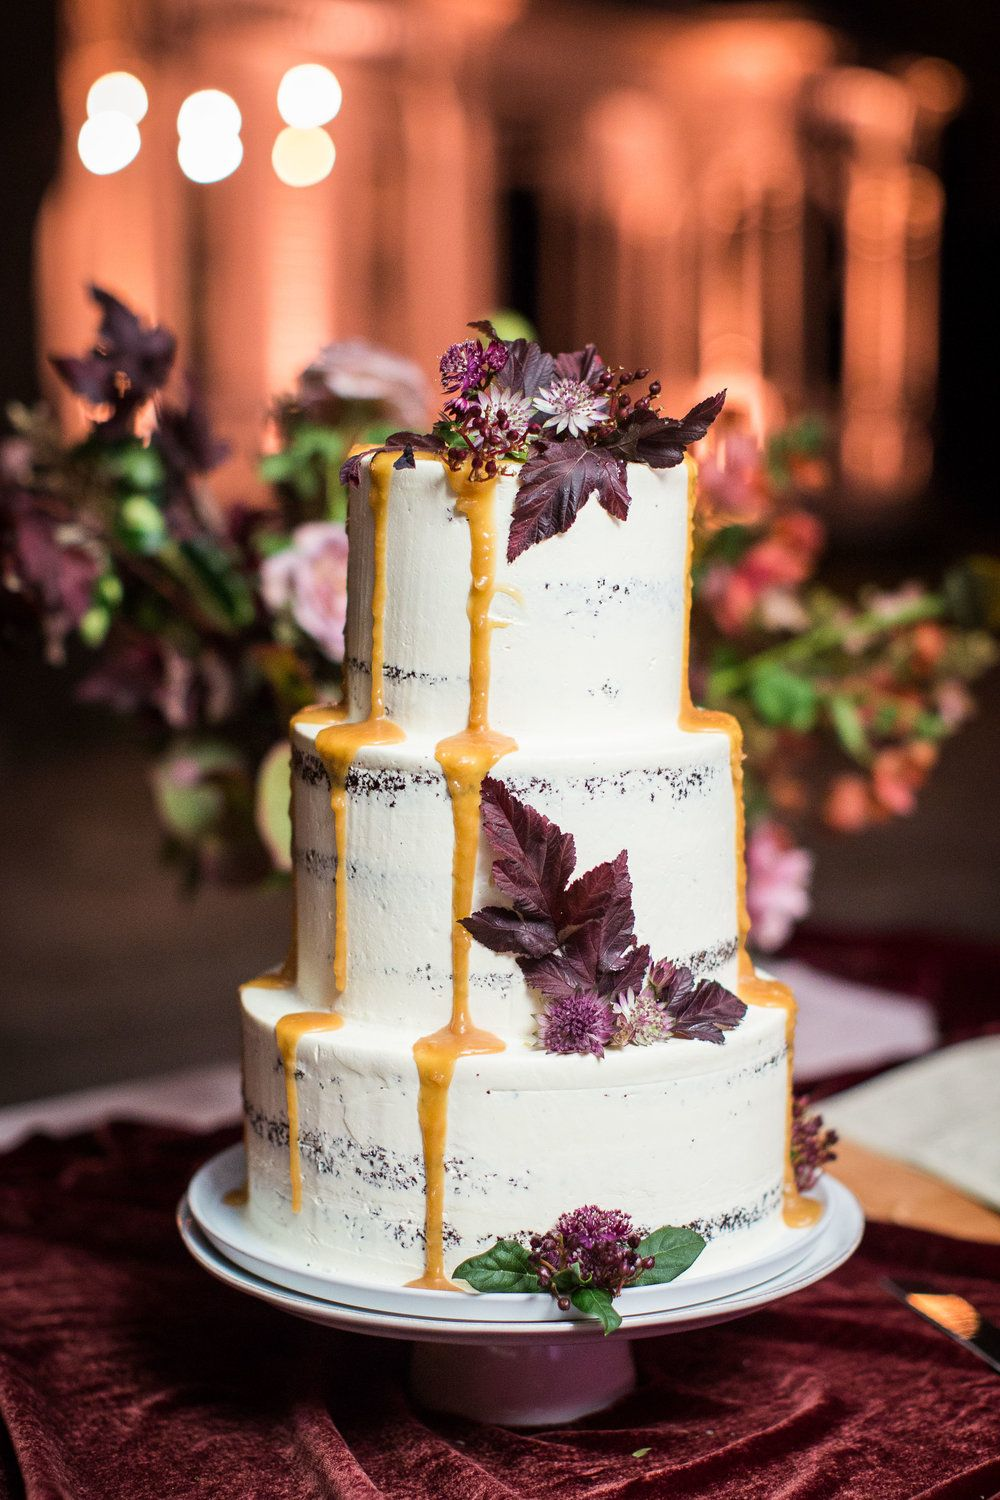 @Magan Gilliland - i think these tree cakes are so CUTE